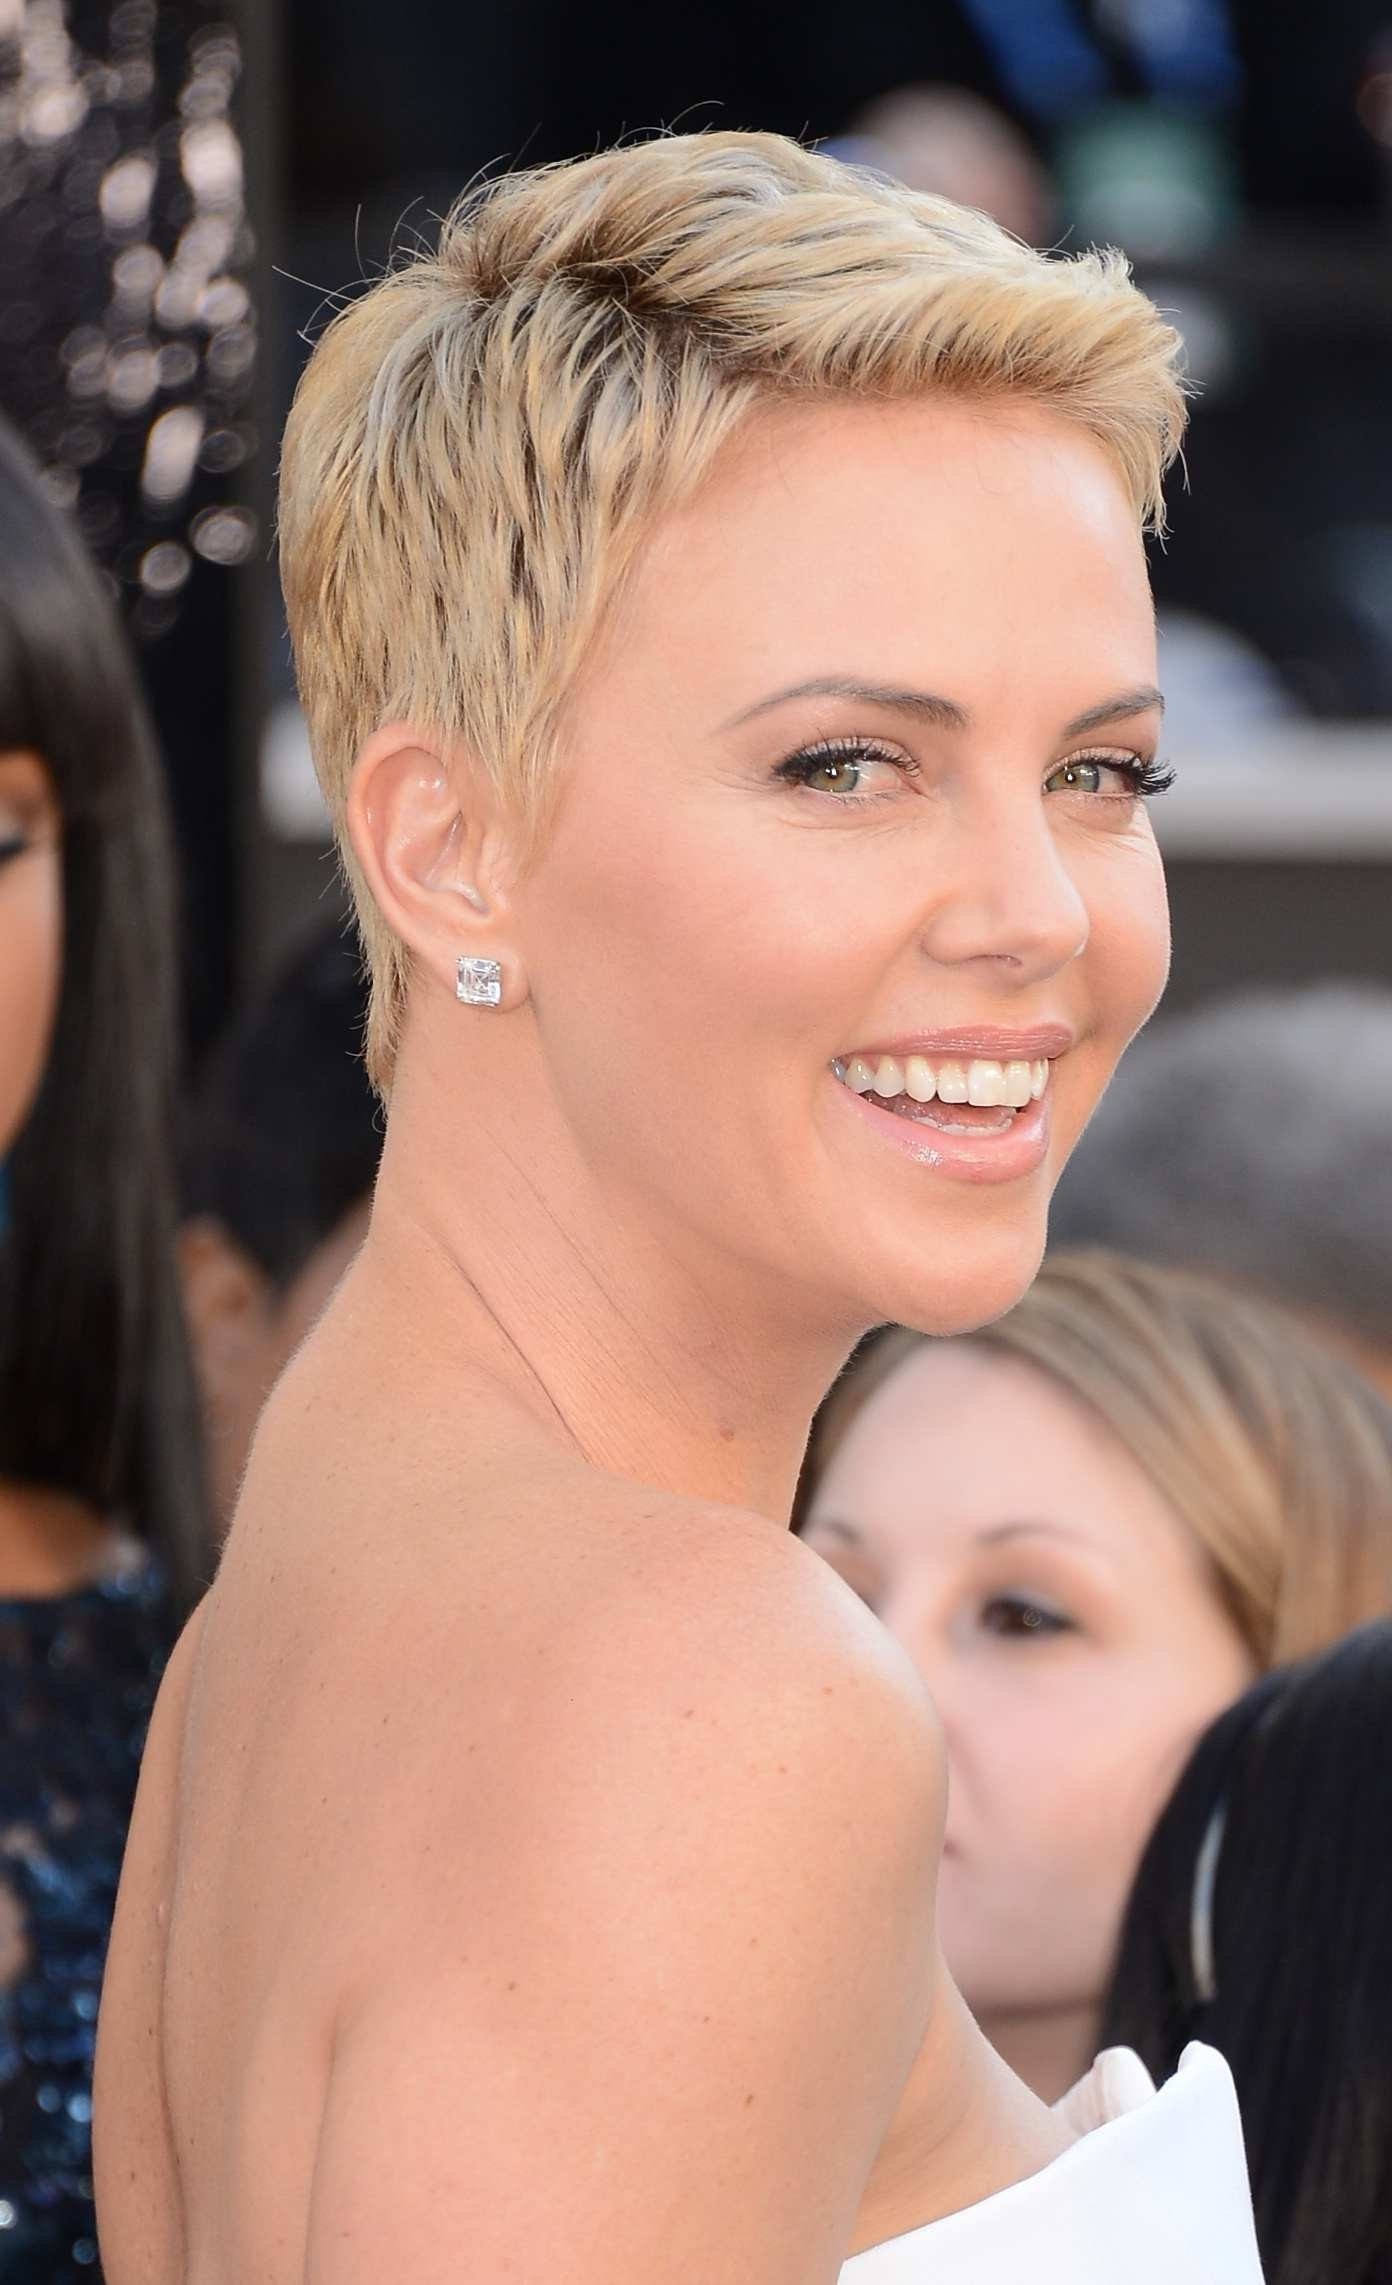 Awesome Short Pixie Haircuts For Fine Thin Hair | Celebrity Short For Latest Pixie Hairstyles For Fine Thin Hair (View 4 of 15)